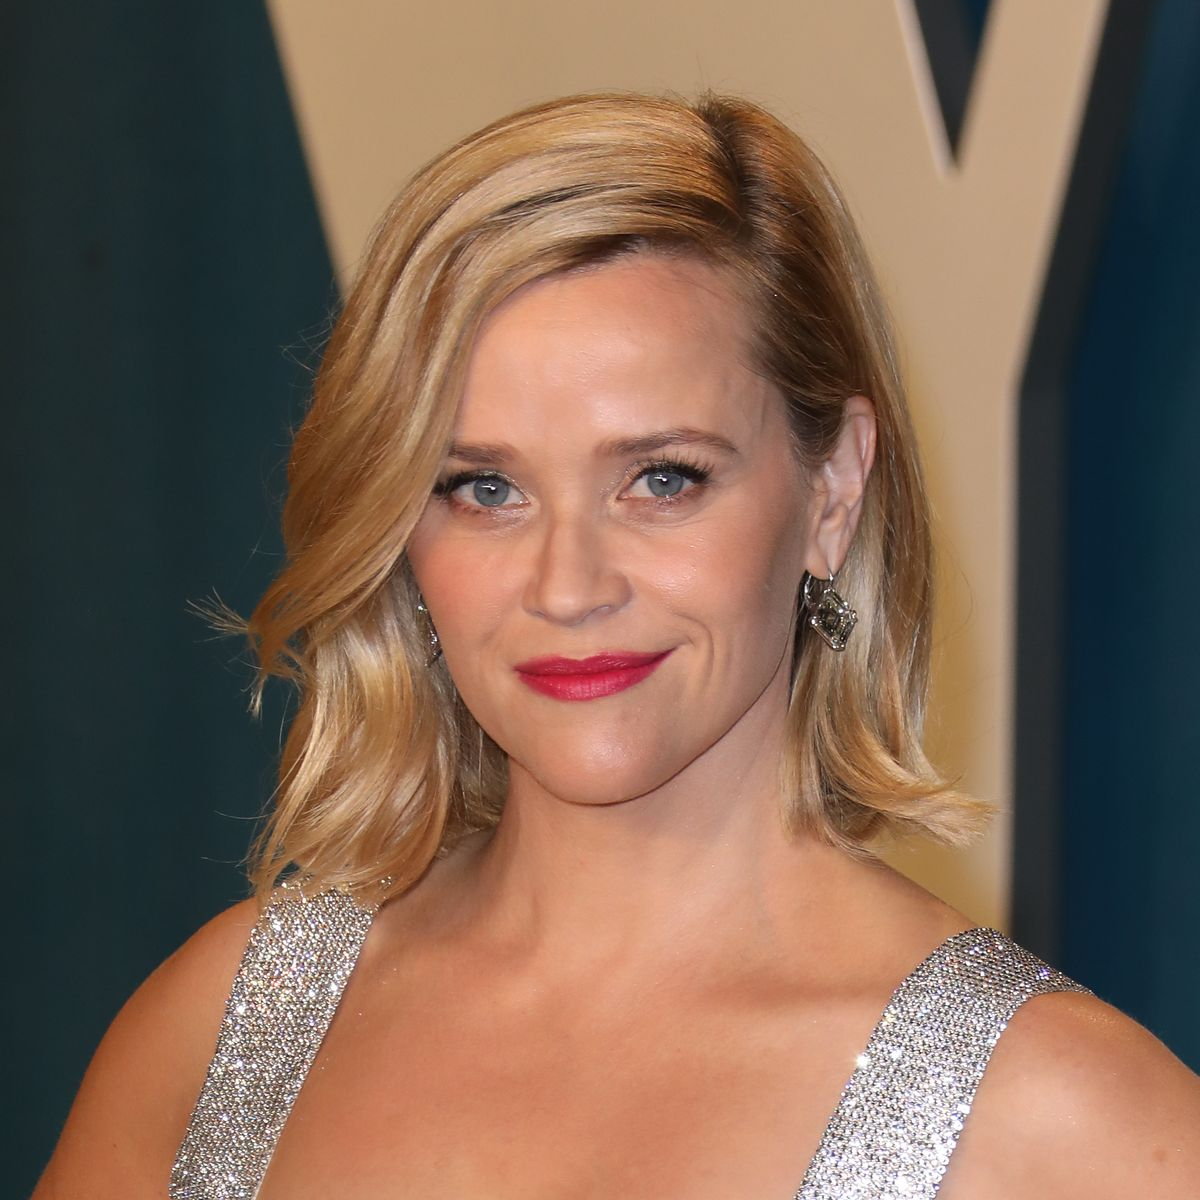 Reese Witherspoon Joins Cast of Two Netflix Rom-Coms